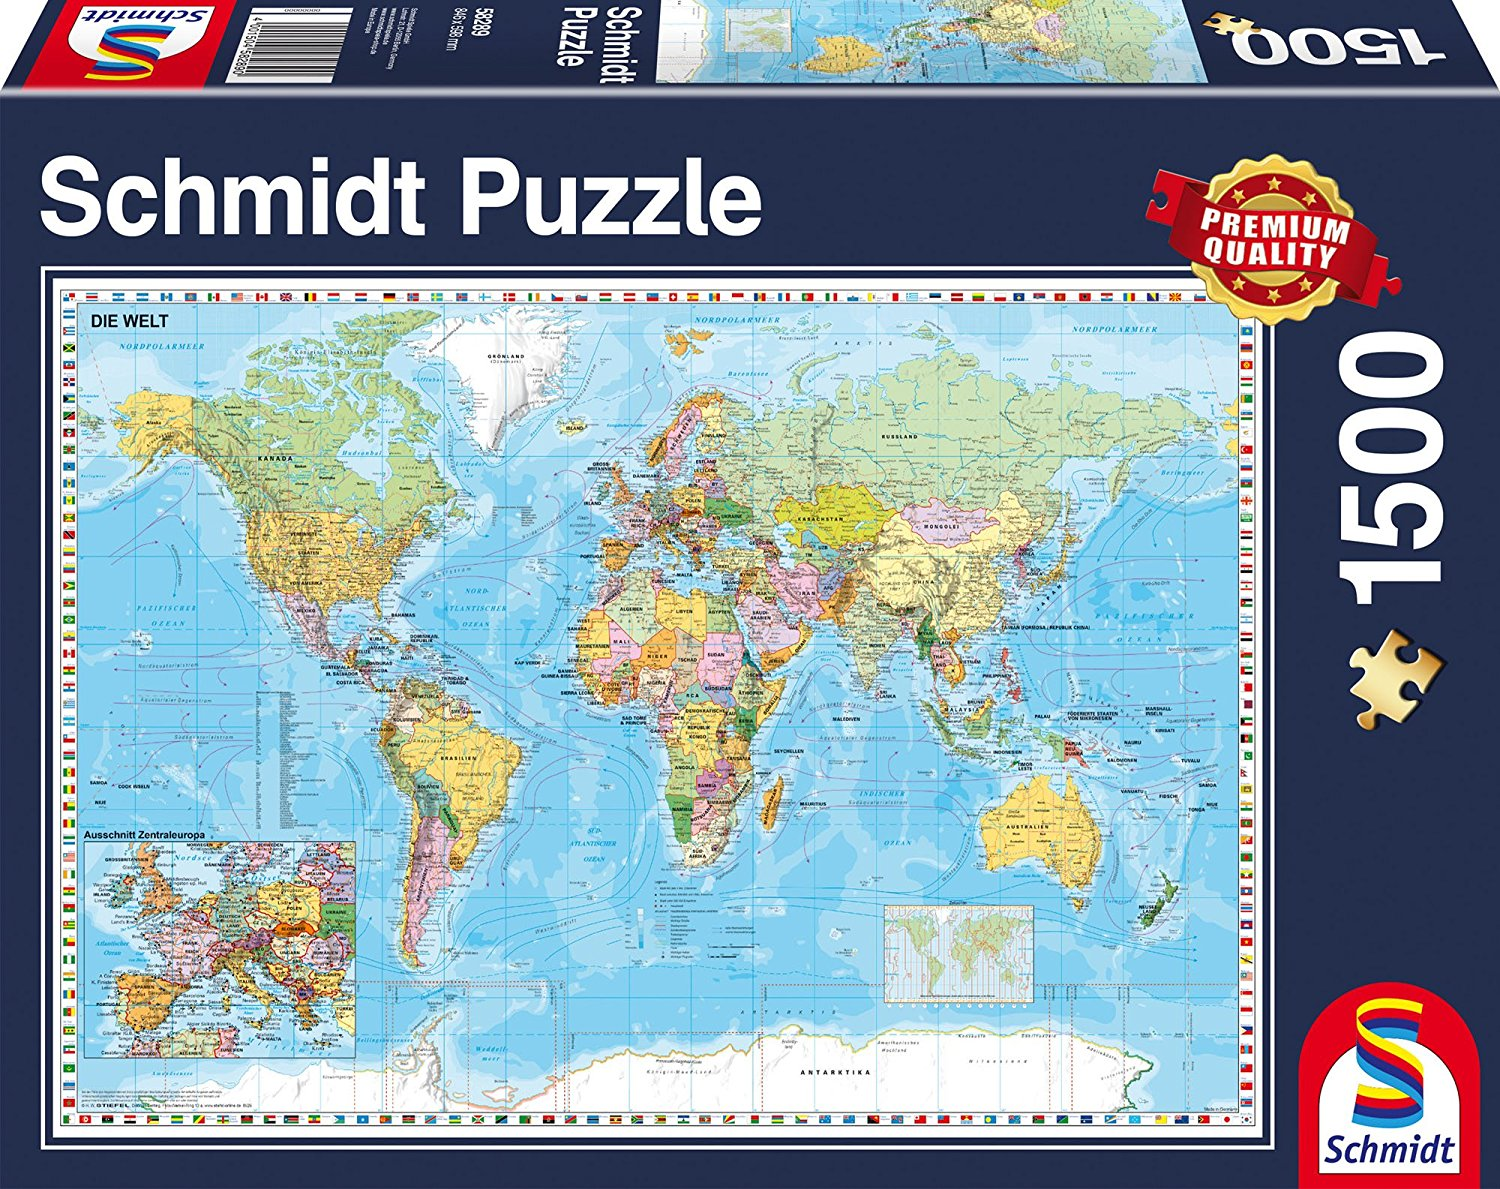 Map Of Uk 1500.Puzzle World Map In German Schmidt Spiele 58289 1500 Pieces Jigsaw